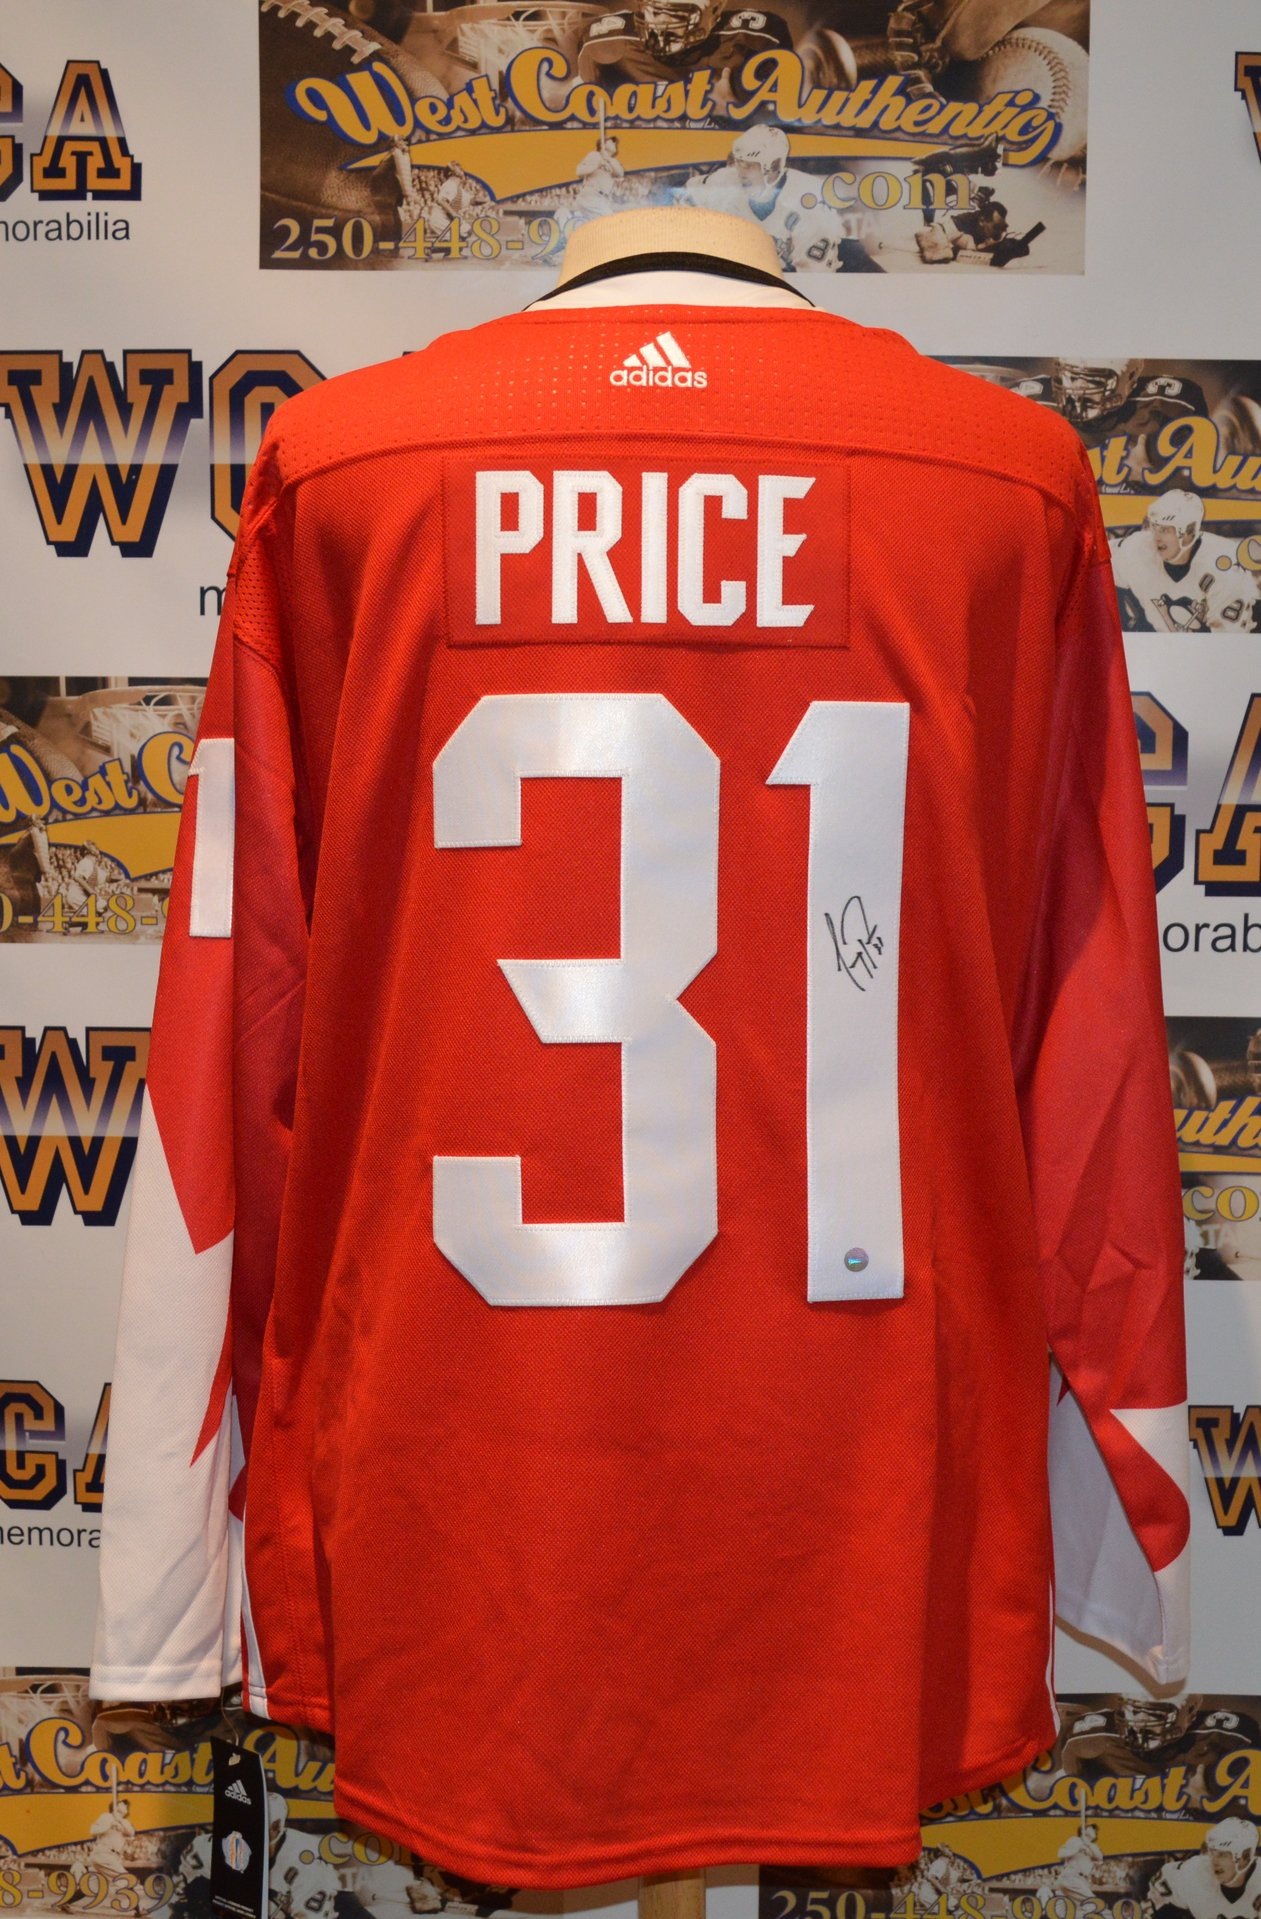 """77965d475 ... Carey Price Autographed Team Canada """"World Cup of Hockey"""" jersey.  rsz west coast authentic nhl canadiens carey price autographed jersey2"""